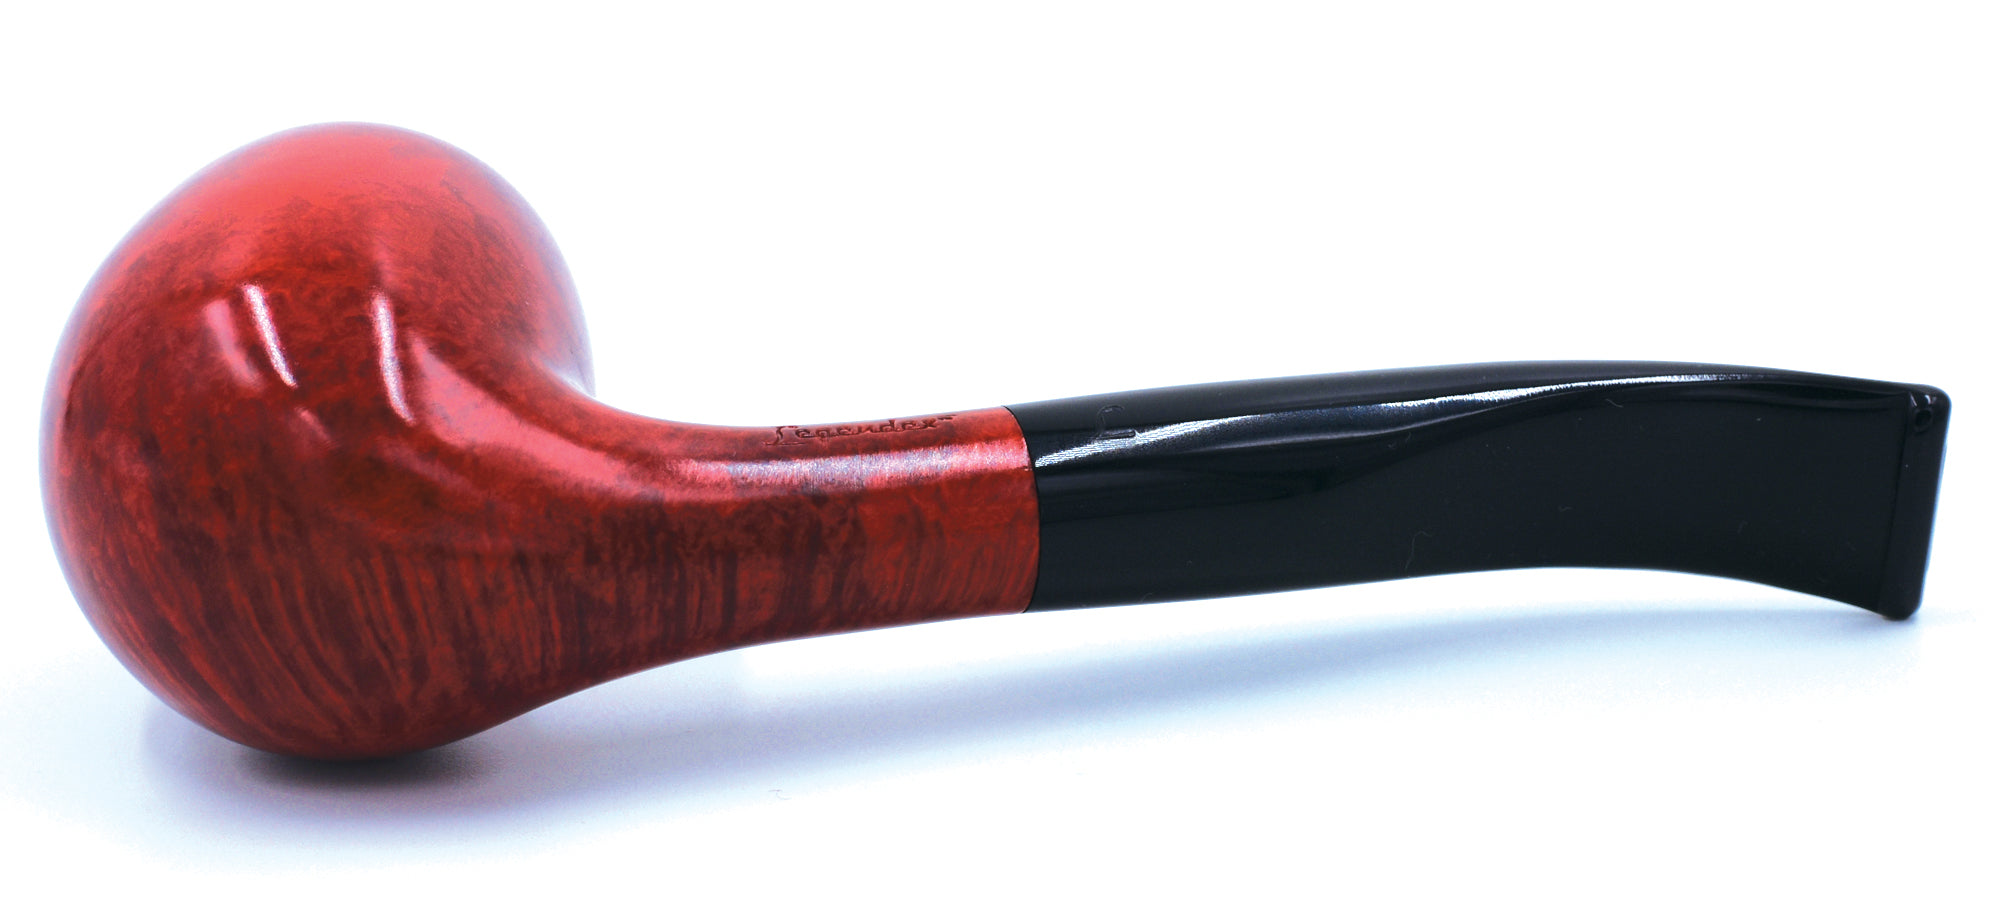 LEGENDEX® PAGANINI* 9 MM Filtered Briar Smoking Pipe Made In Italy 01-08-301